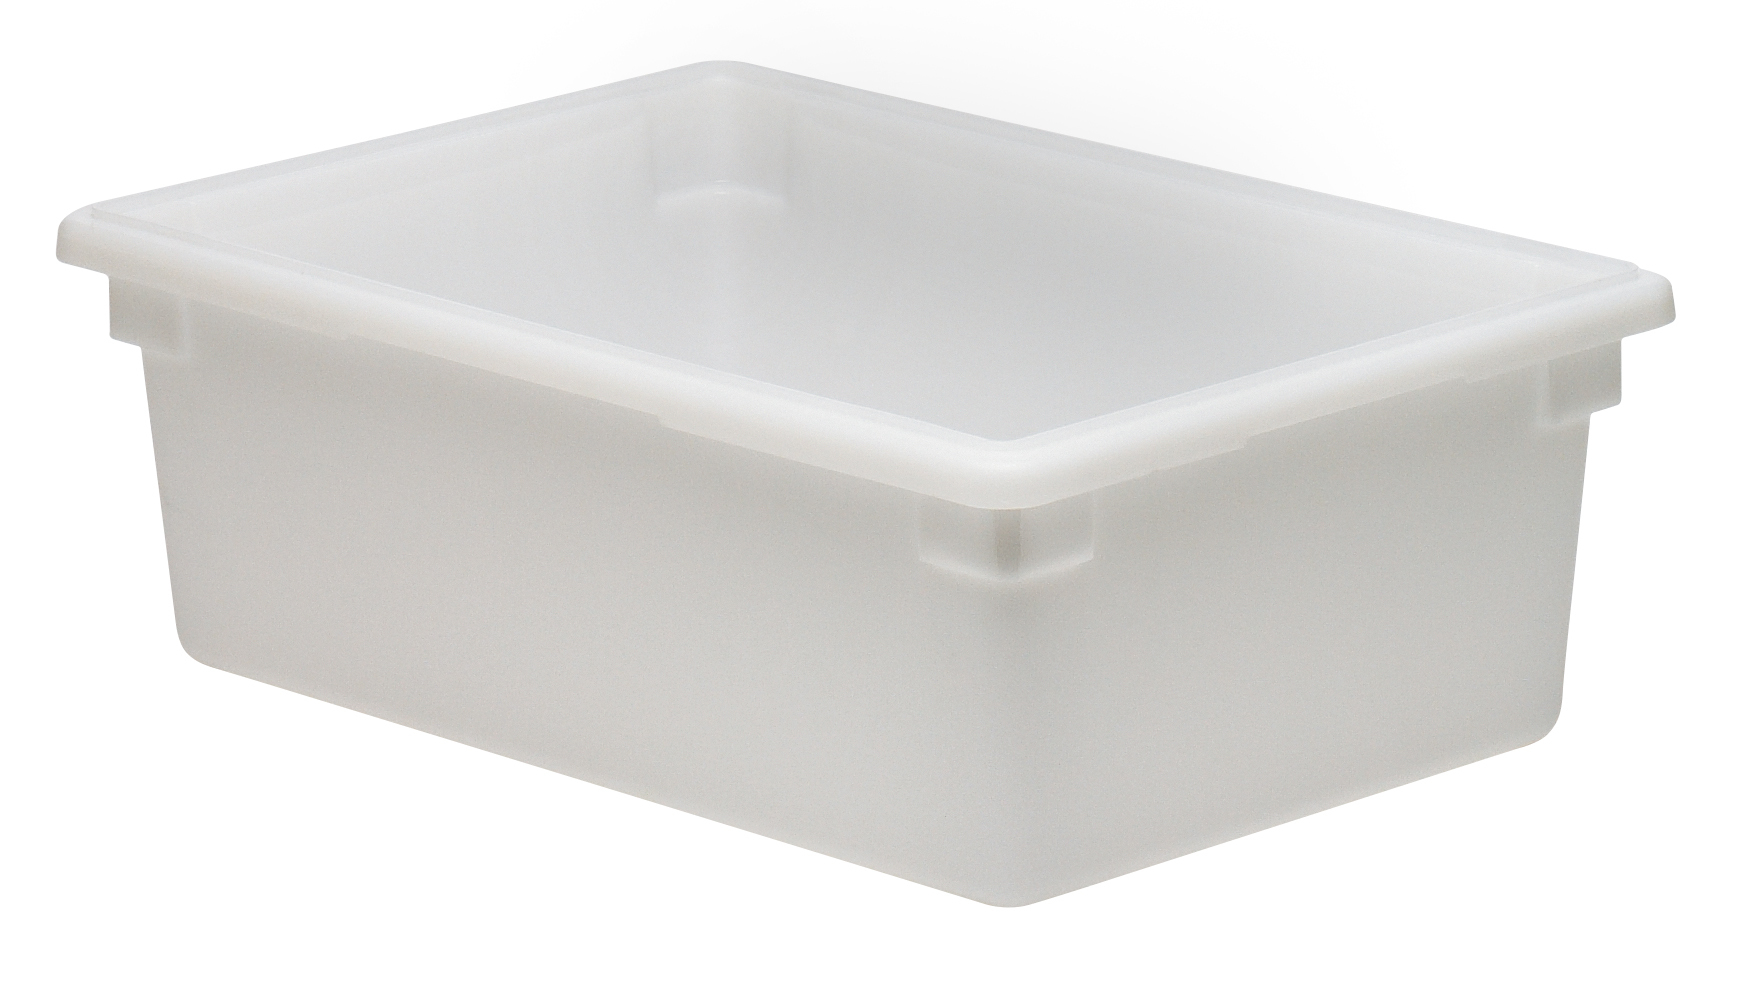 Cambro 18269P148 food/beverage storage container